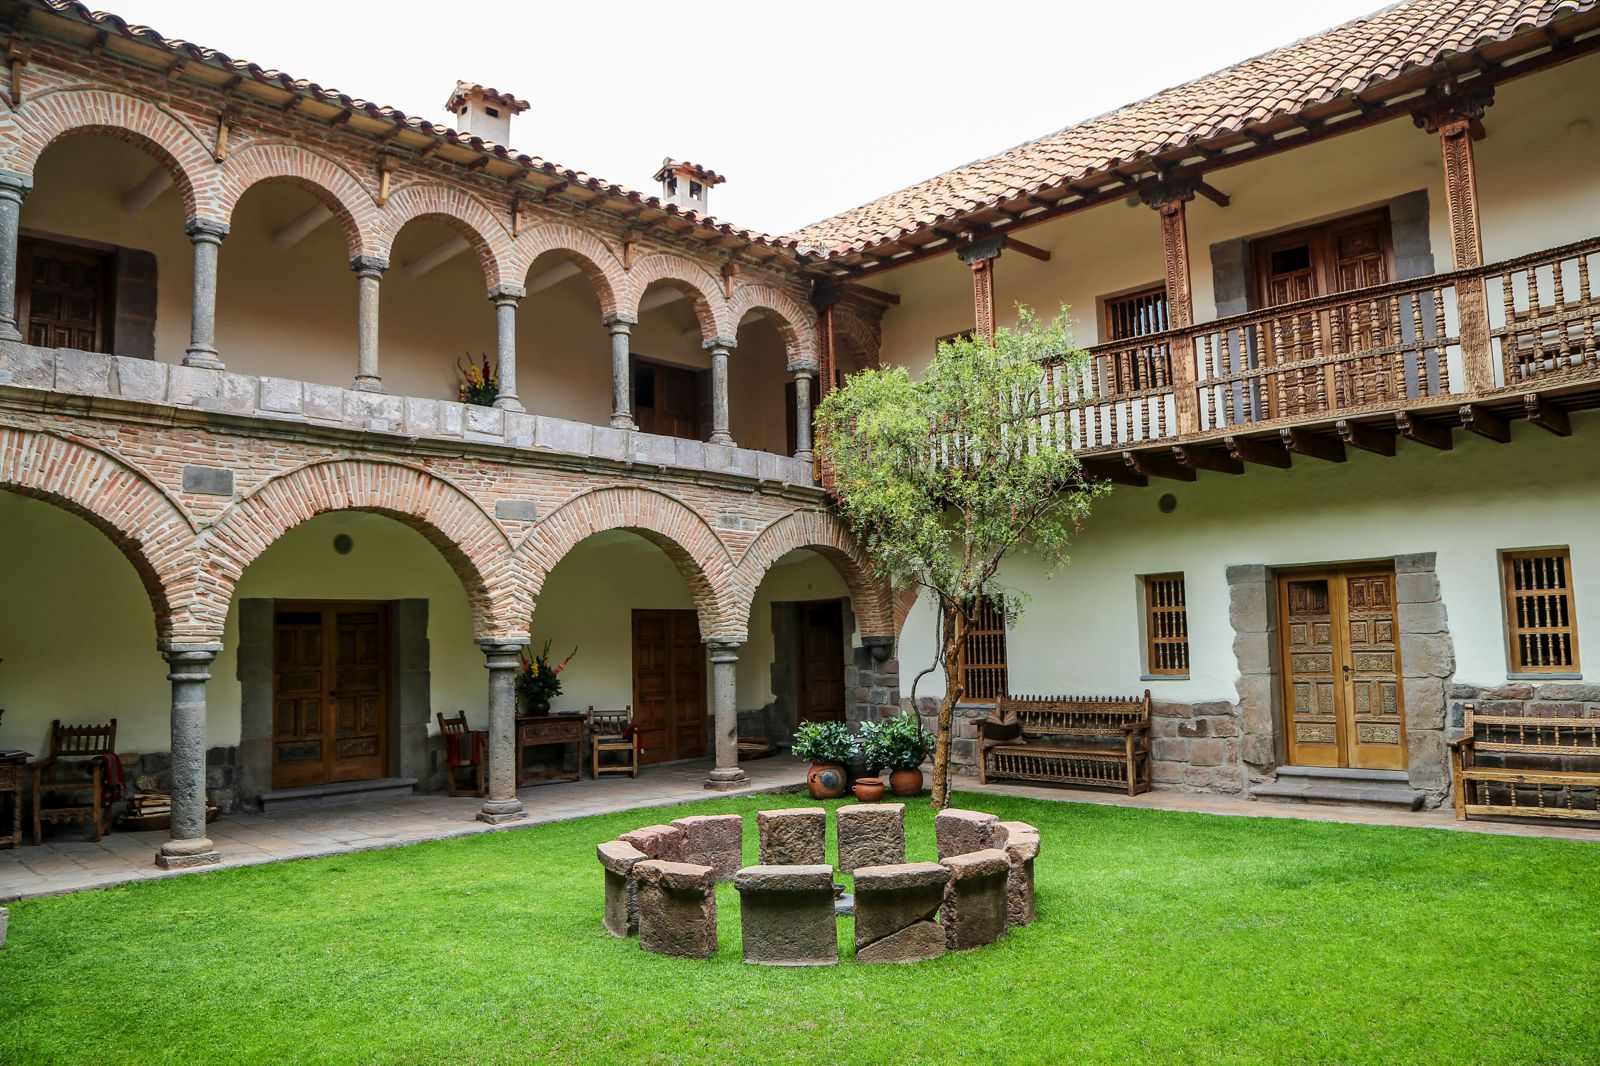 4 Amazing Ancient Inca Sights To See In Cusco And The Sacred Valley of the Incas (28)